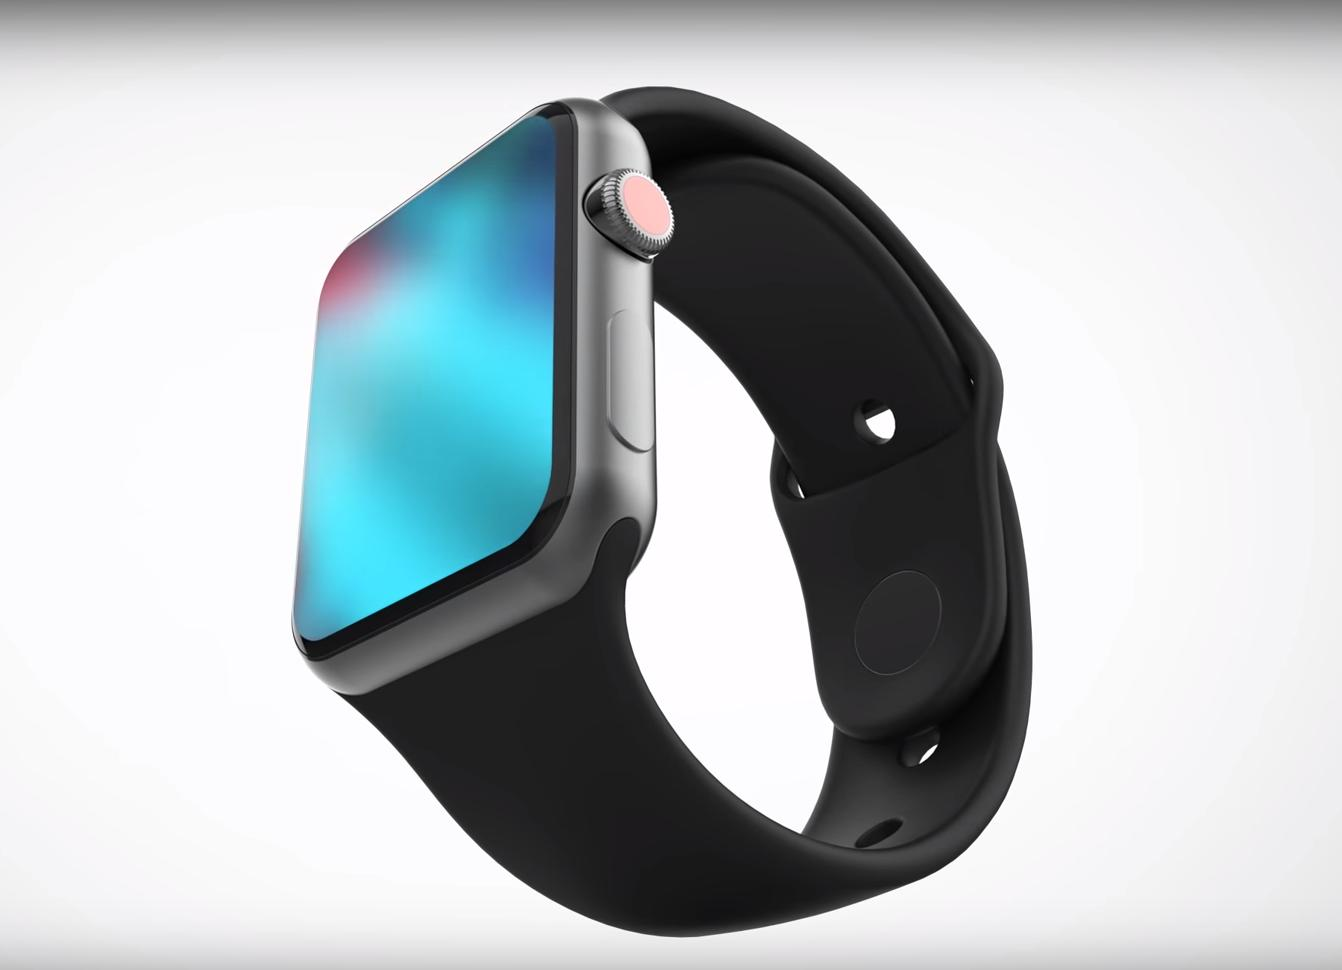 If This Is the Apple Watch Series 4, I'm Sold on